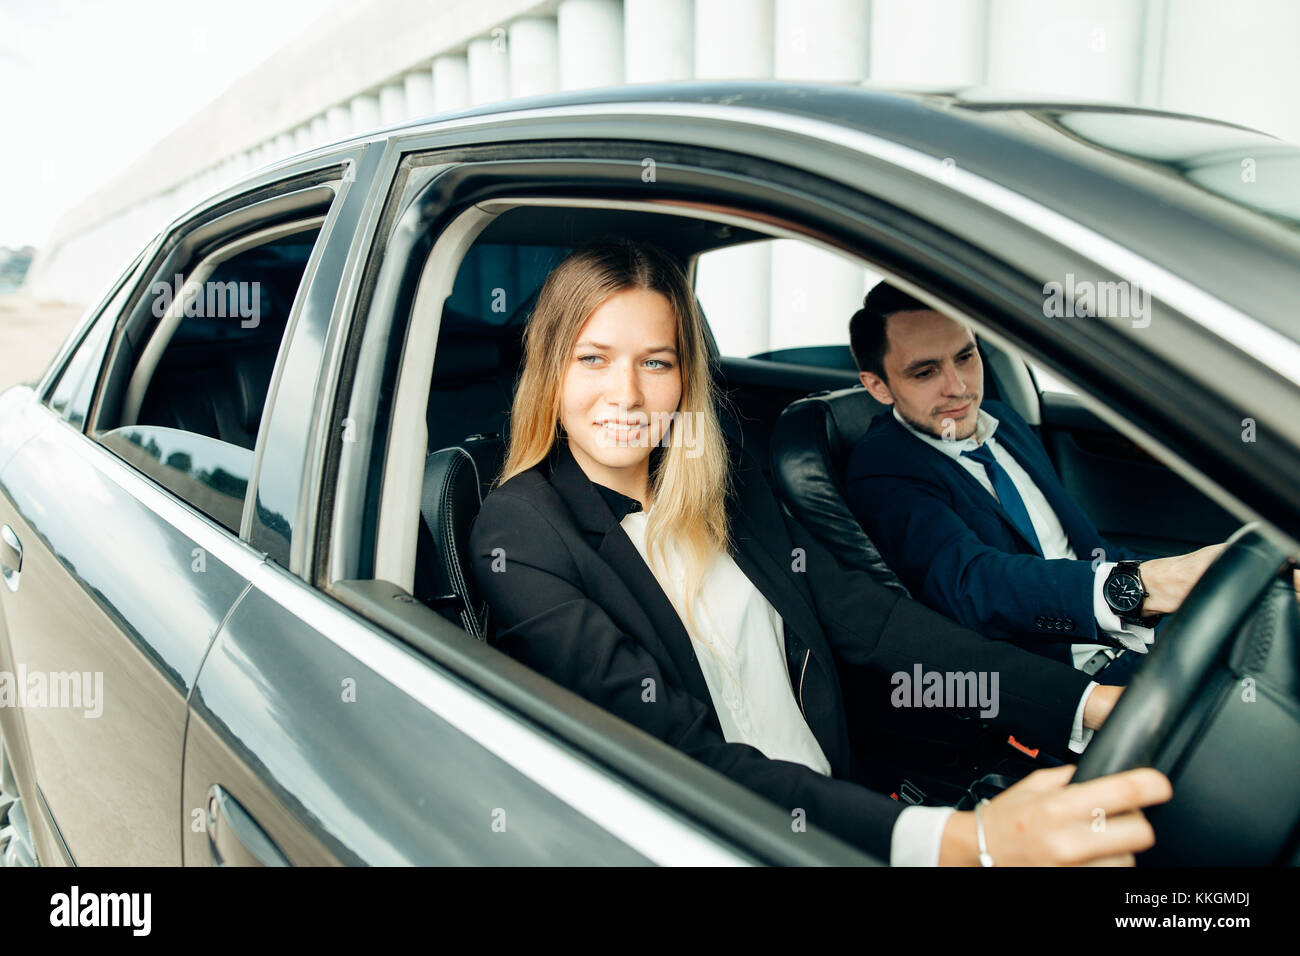 Driving instructor and woman student in examination car. - Stock Image